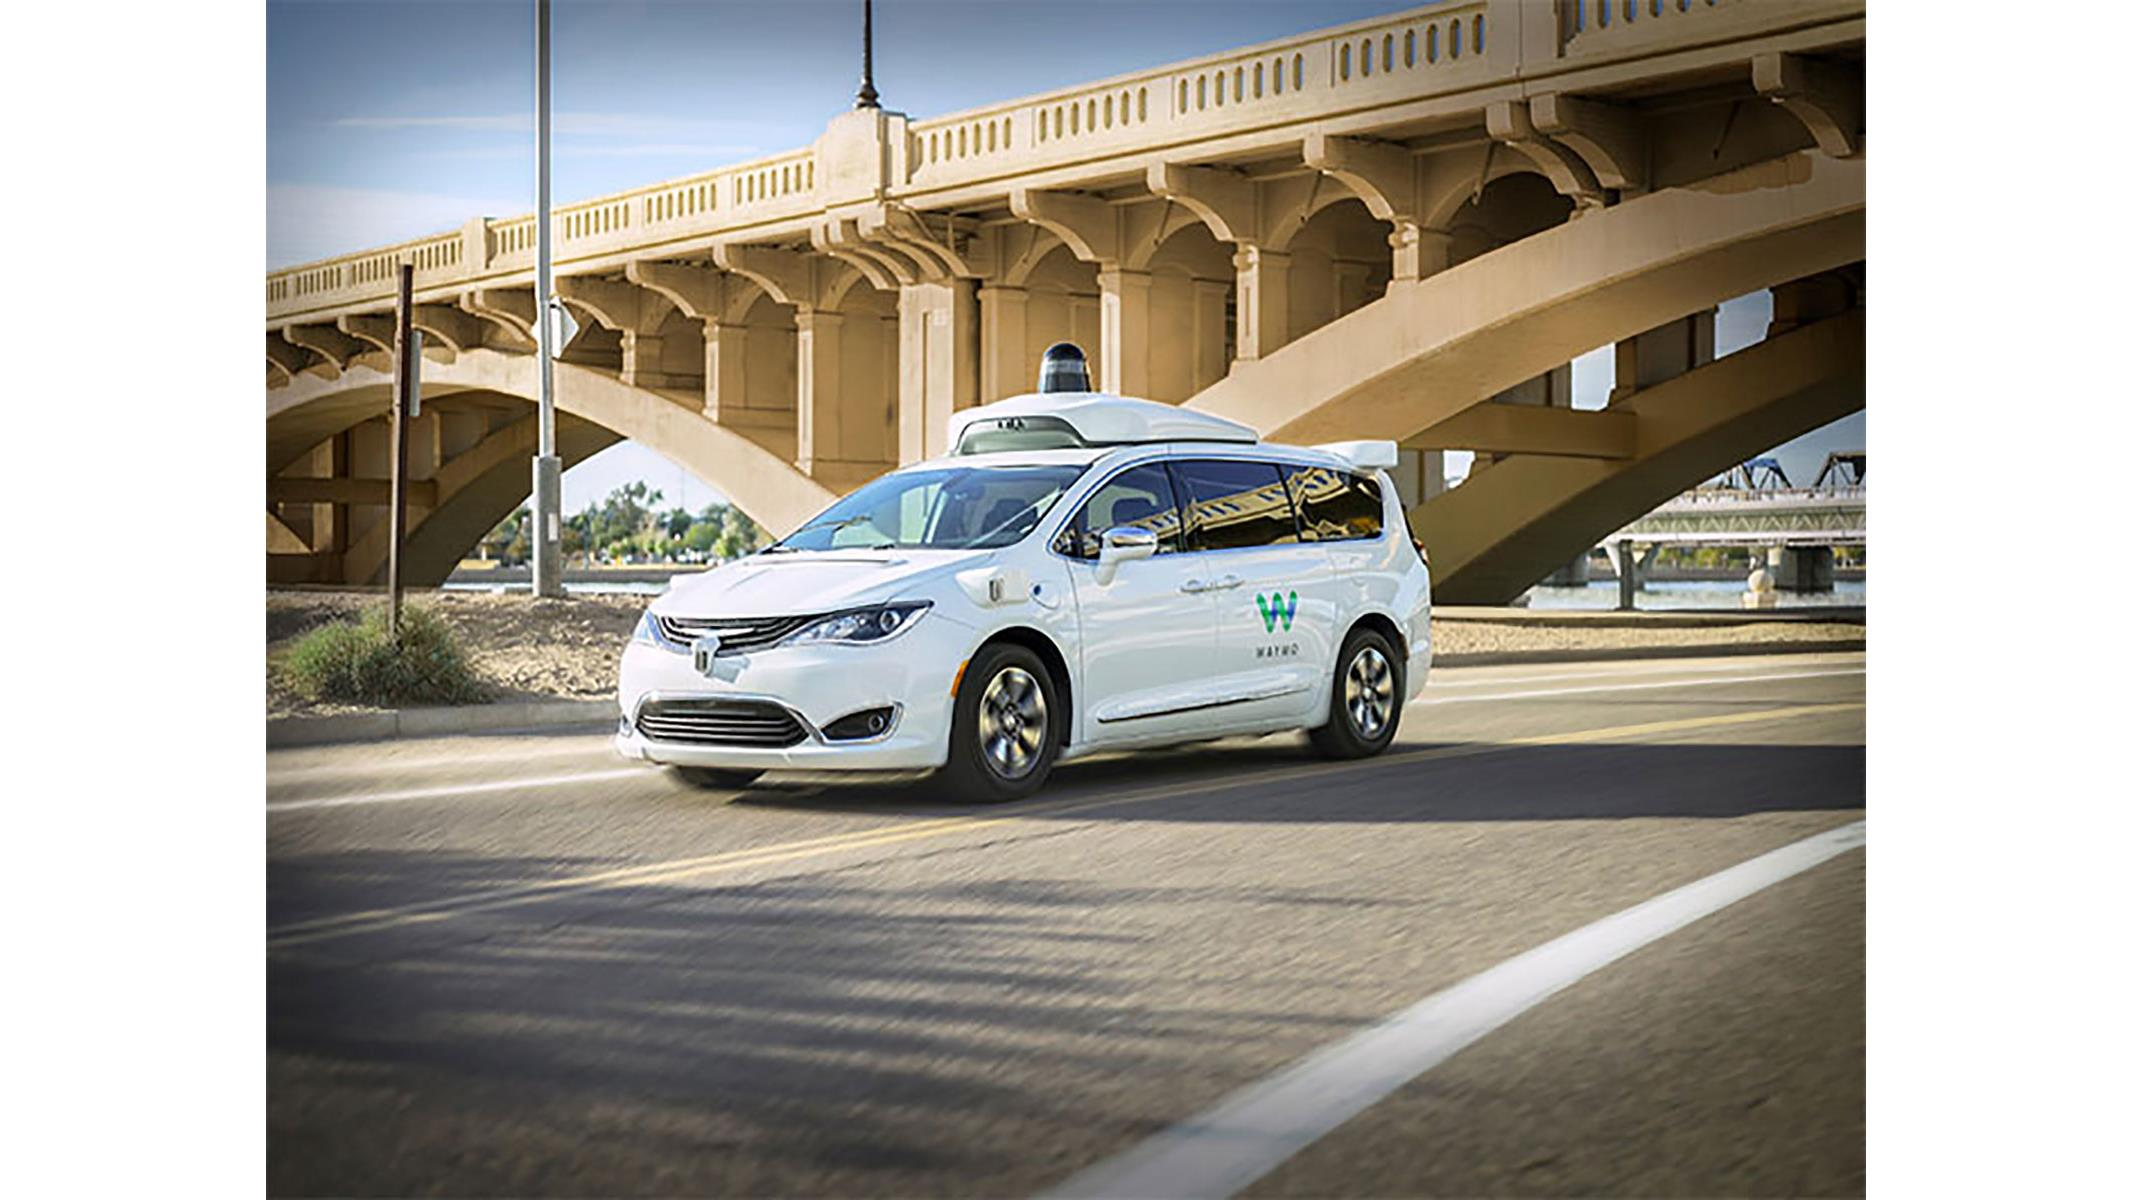 Watch As Completely Autonomous Waymo Cars Drive Through Arizona Streets